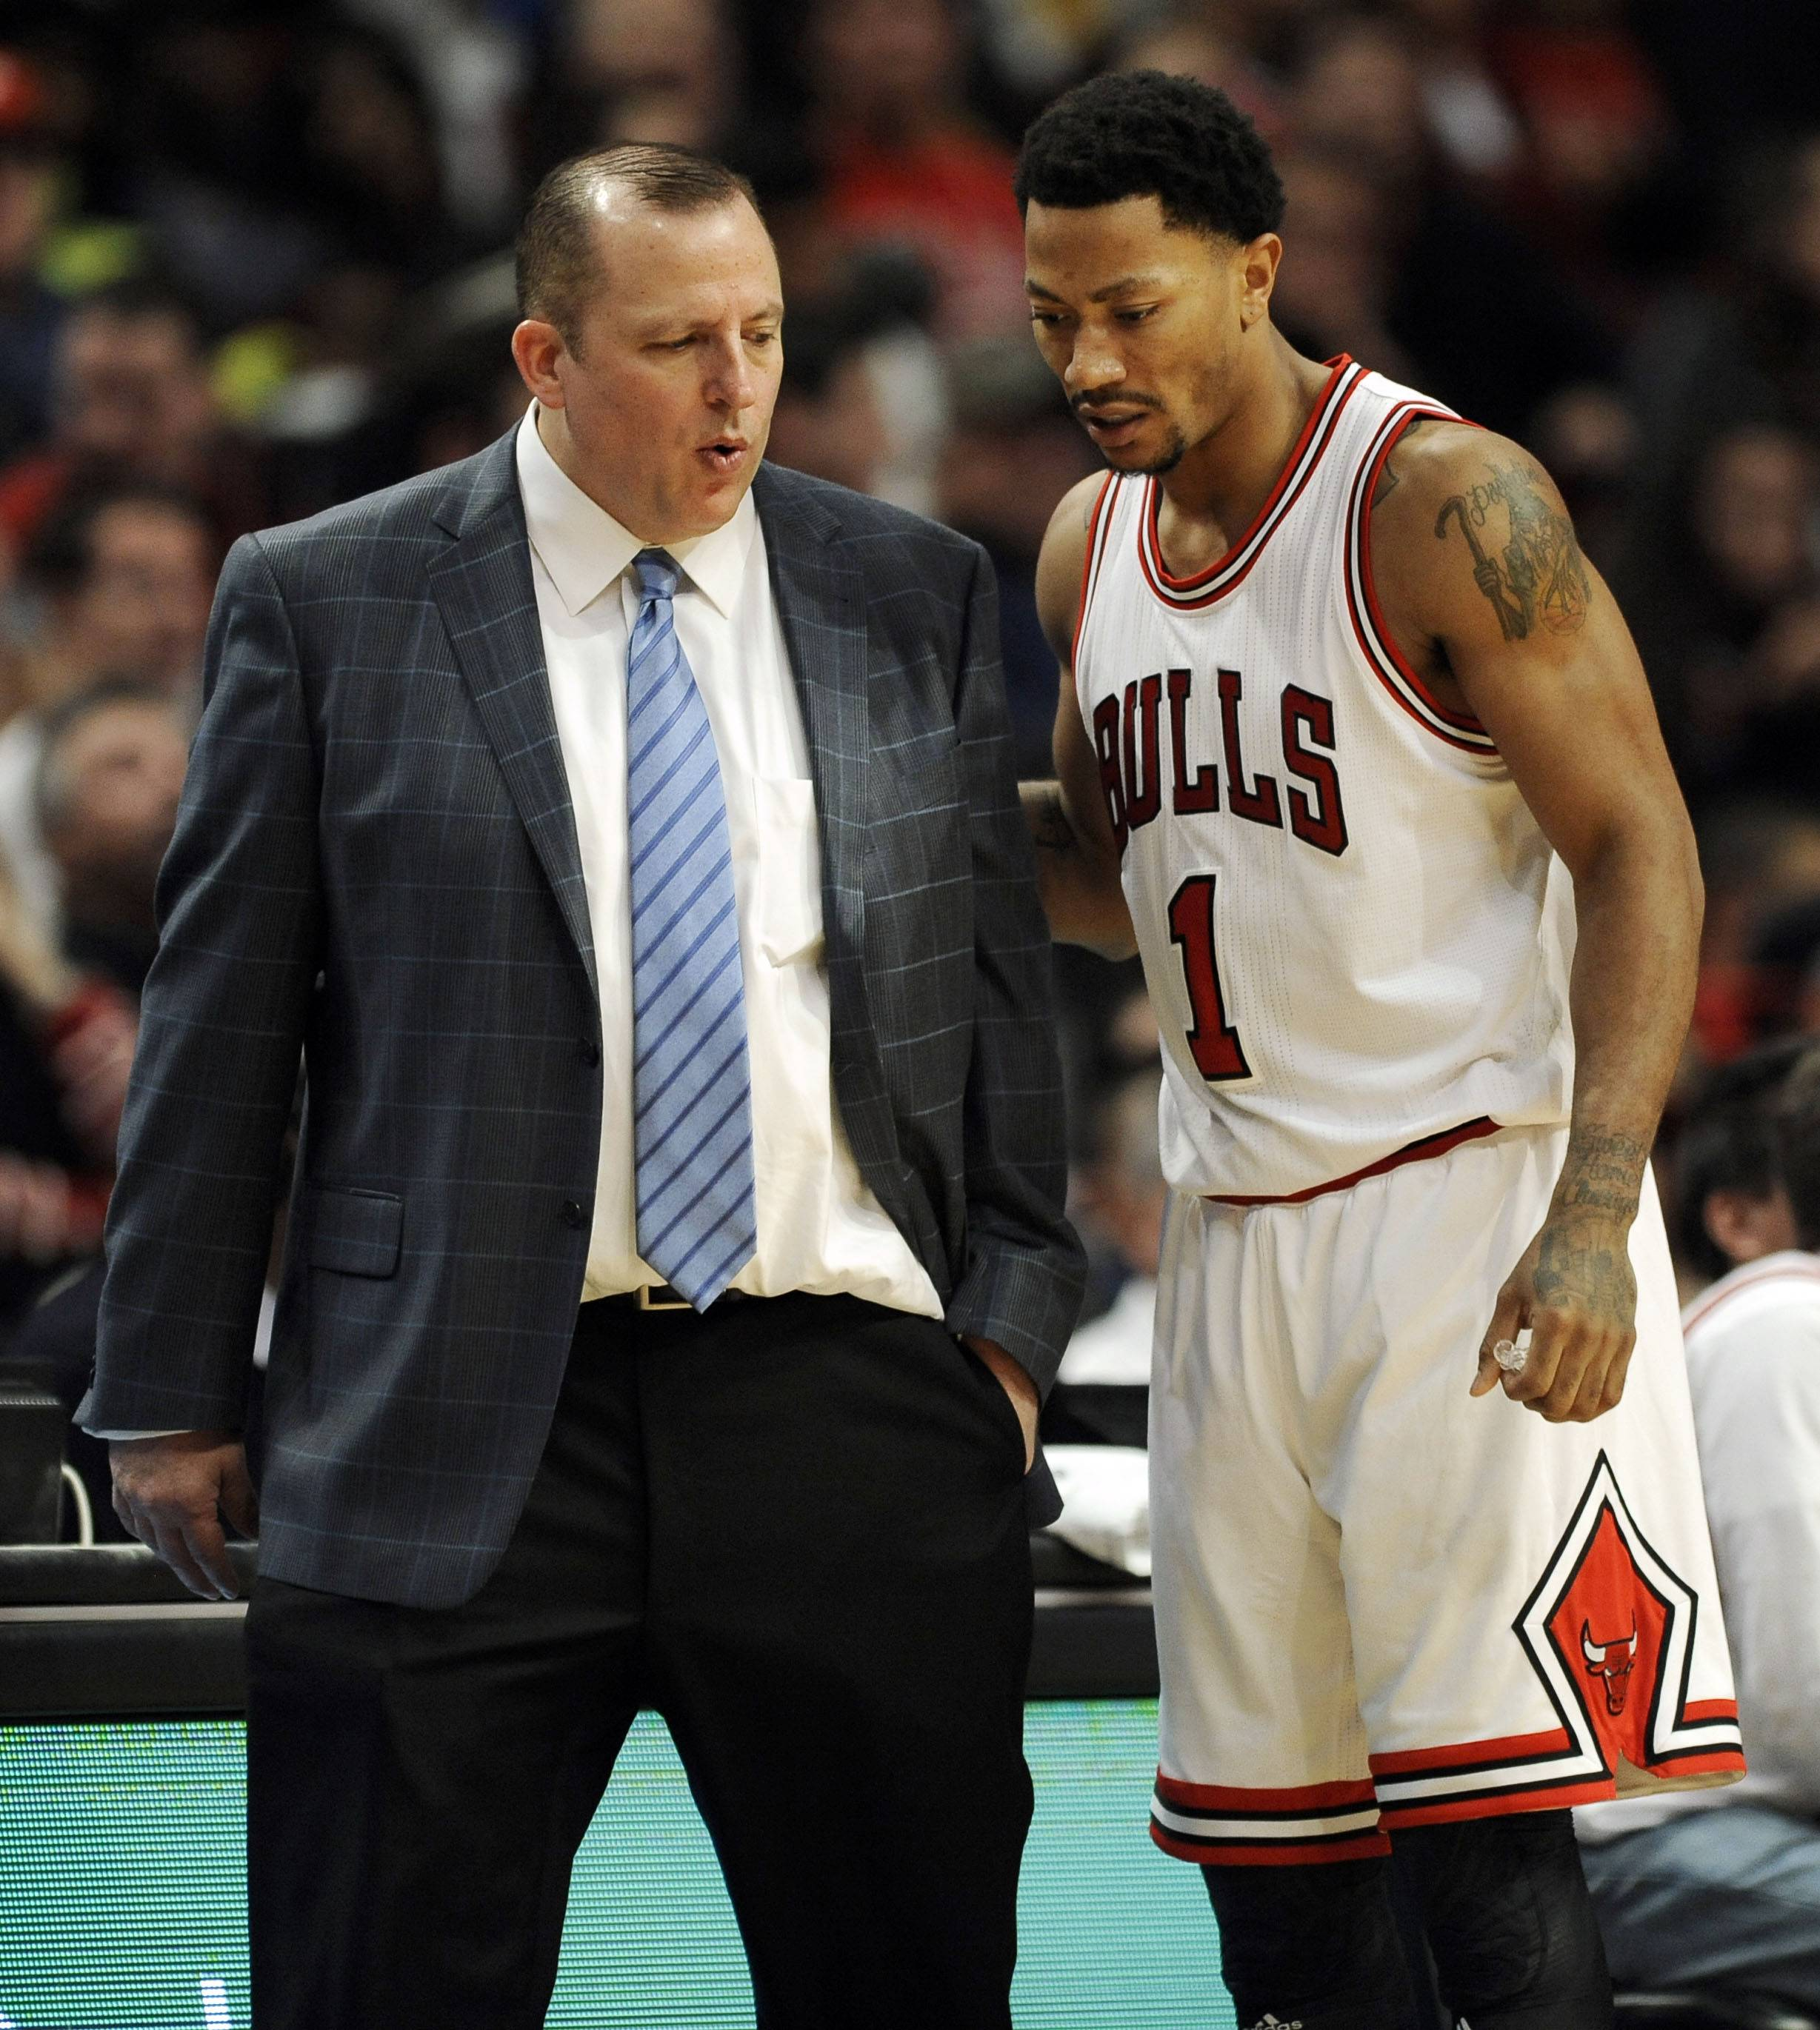 Add Rose to the list of Thibodeau's Timberbulls